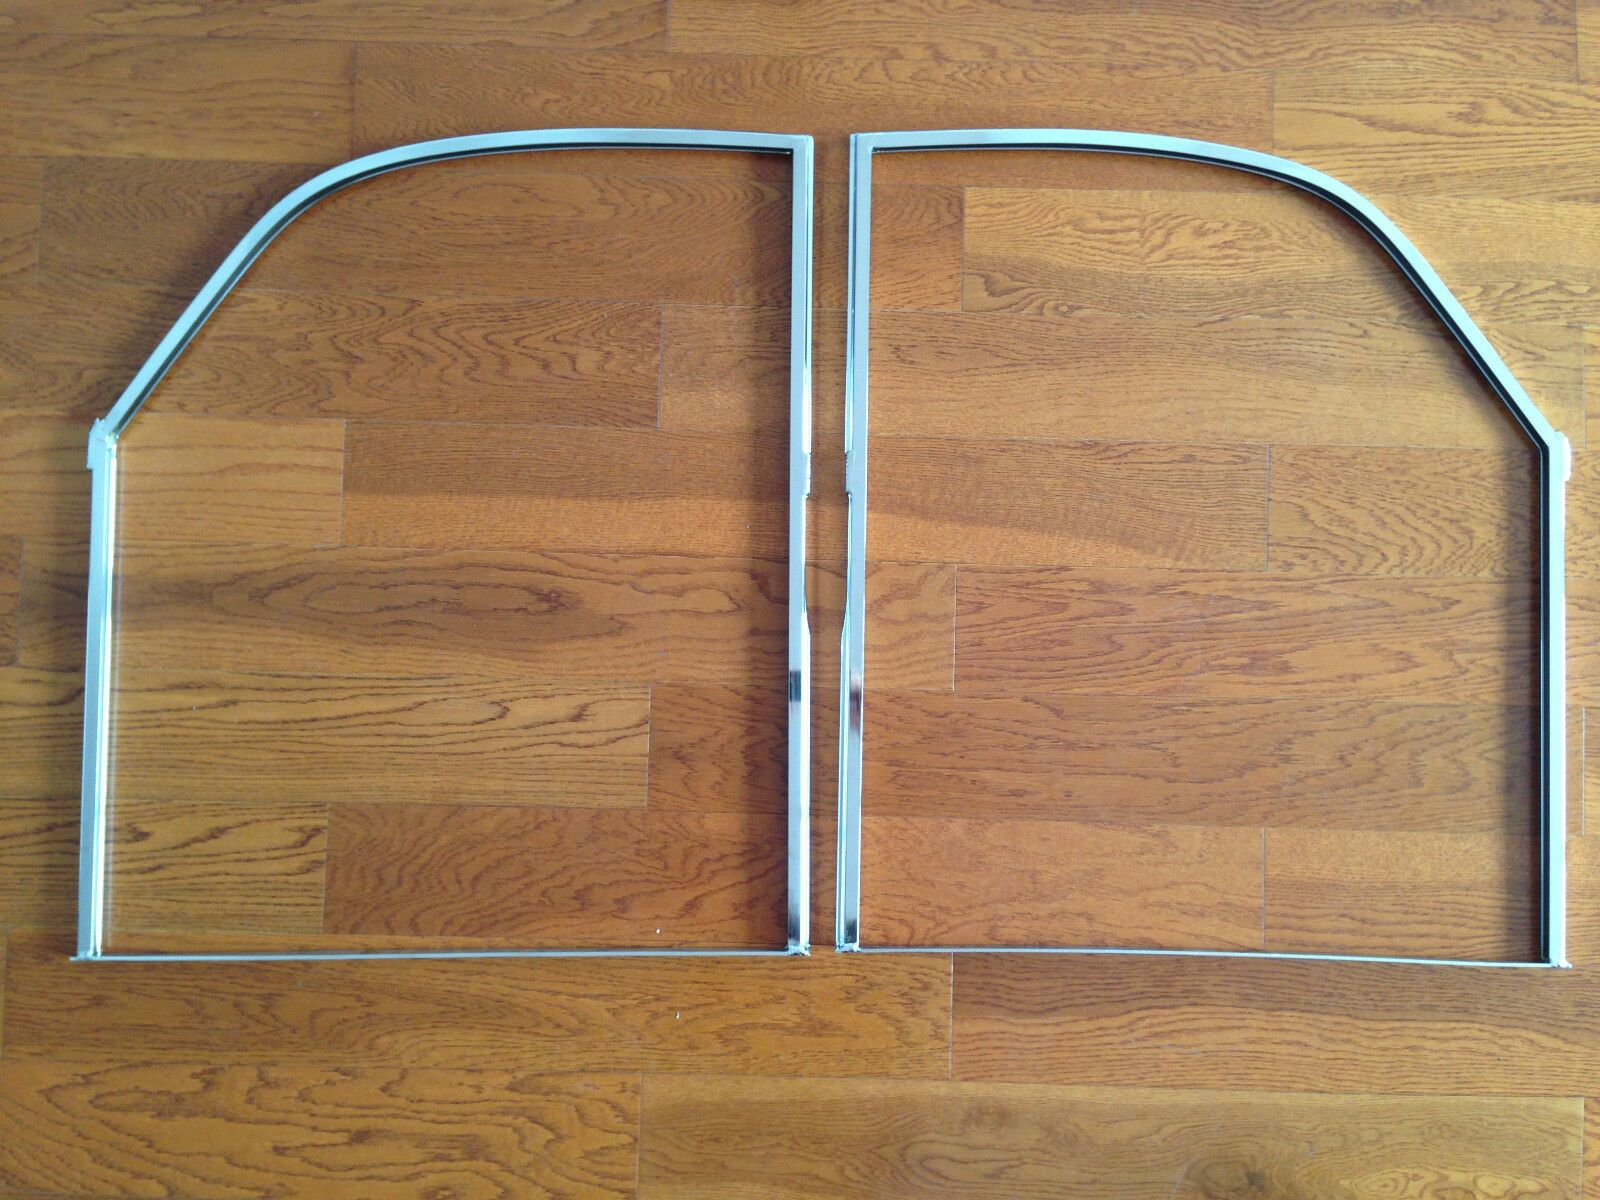 Porsche 356 Door Window Frame Chrome Plated Left And Right Ebay In 2020 Chrome Plating Porsche 356 Window Frame